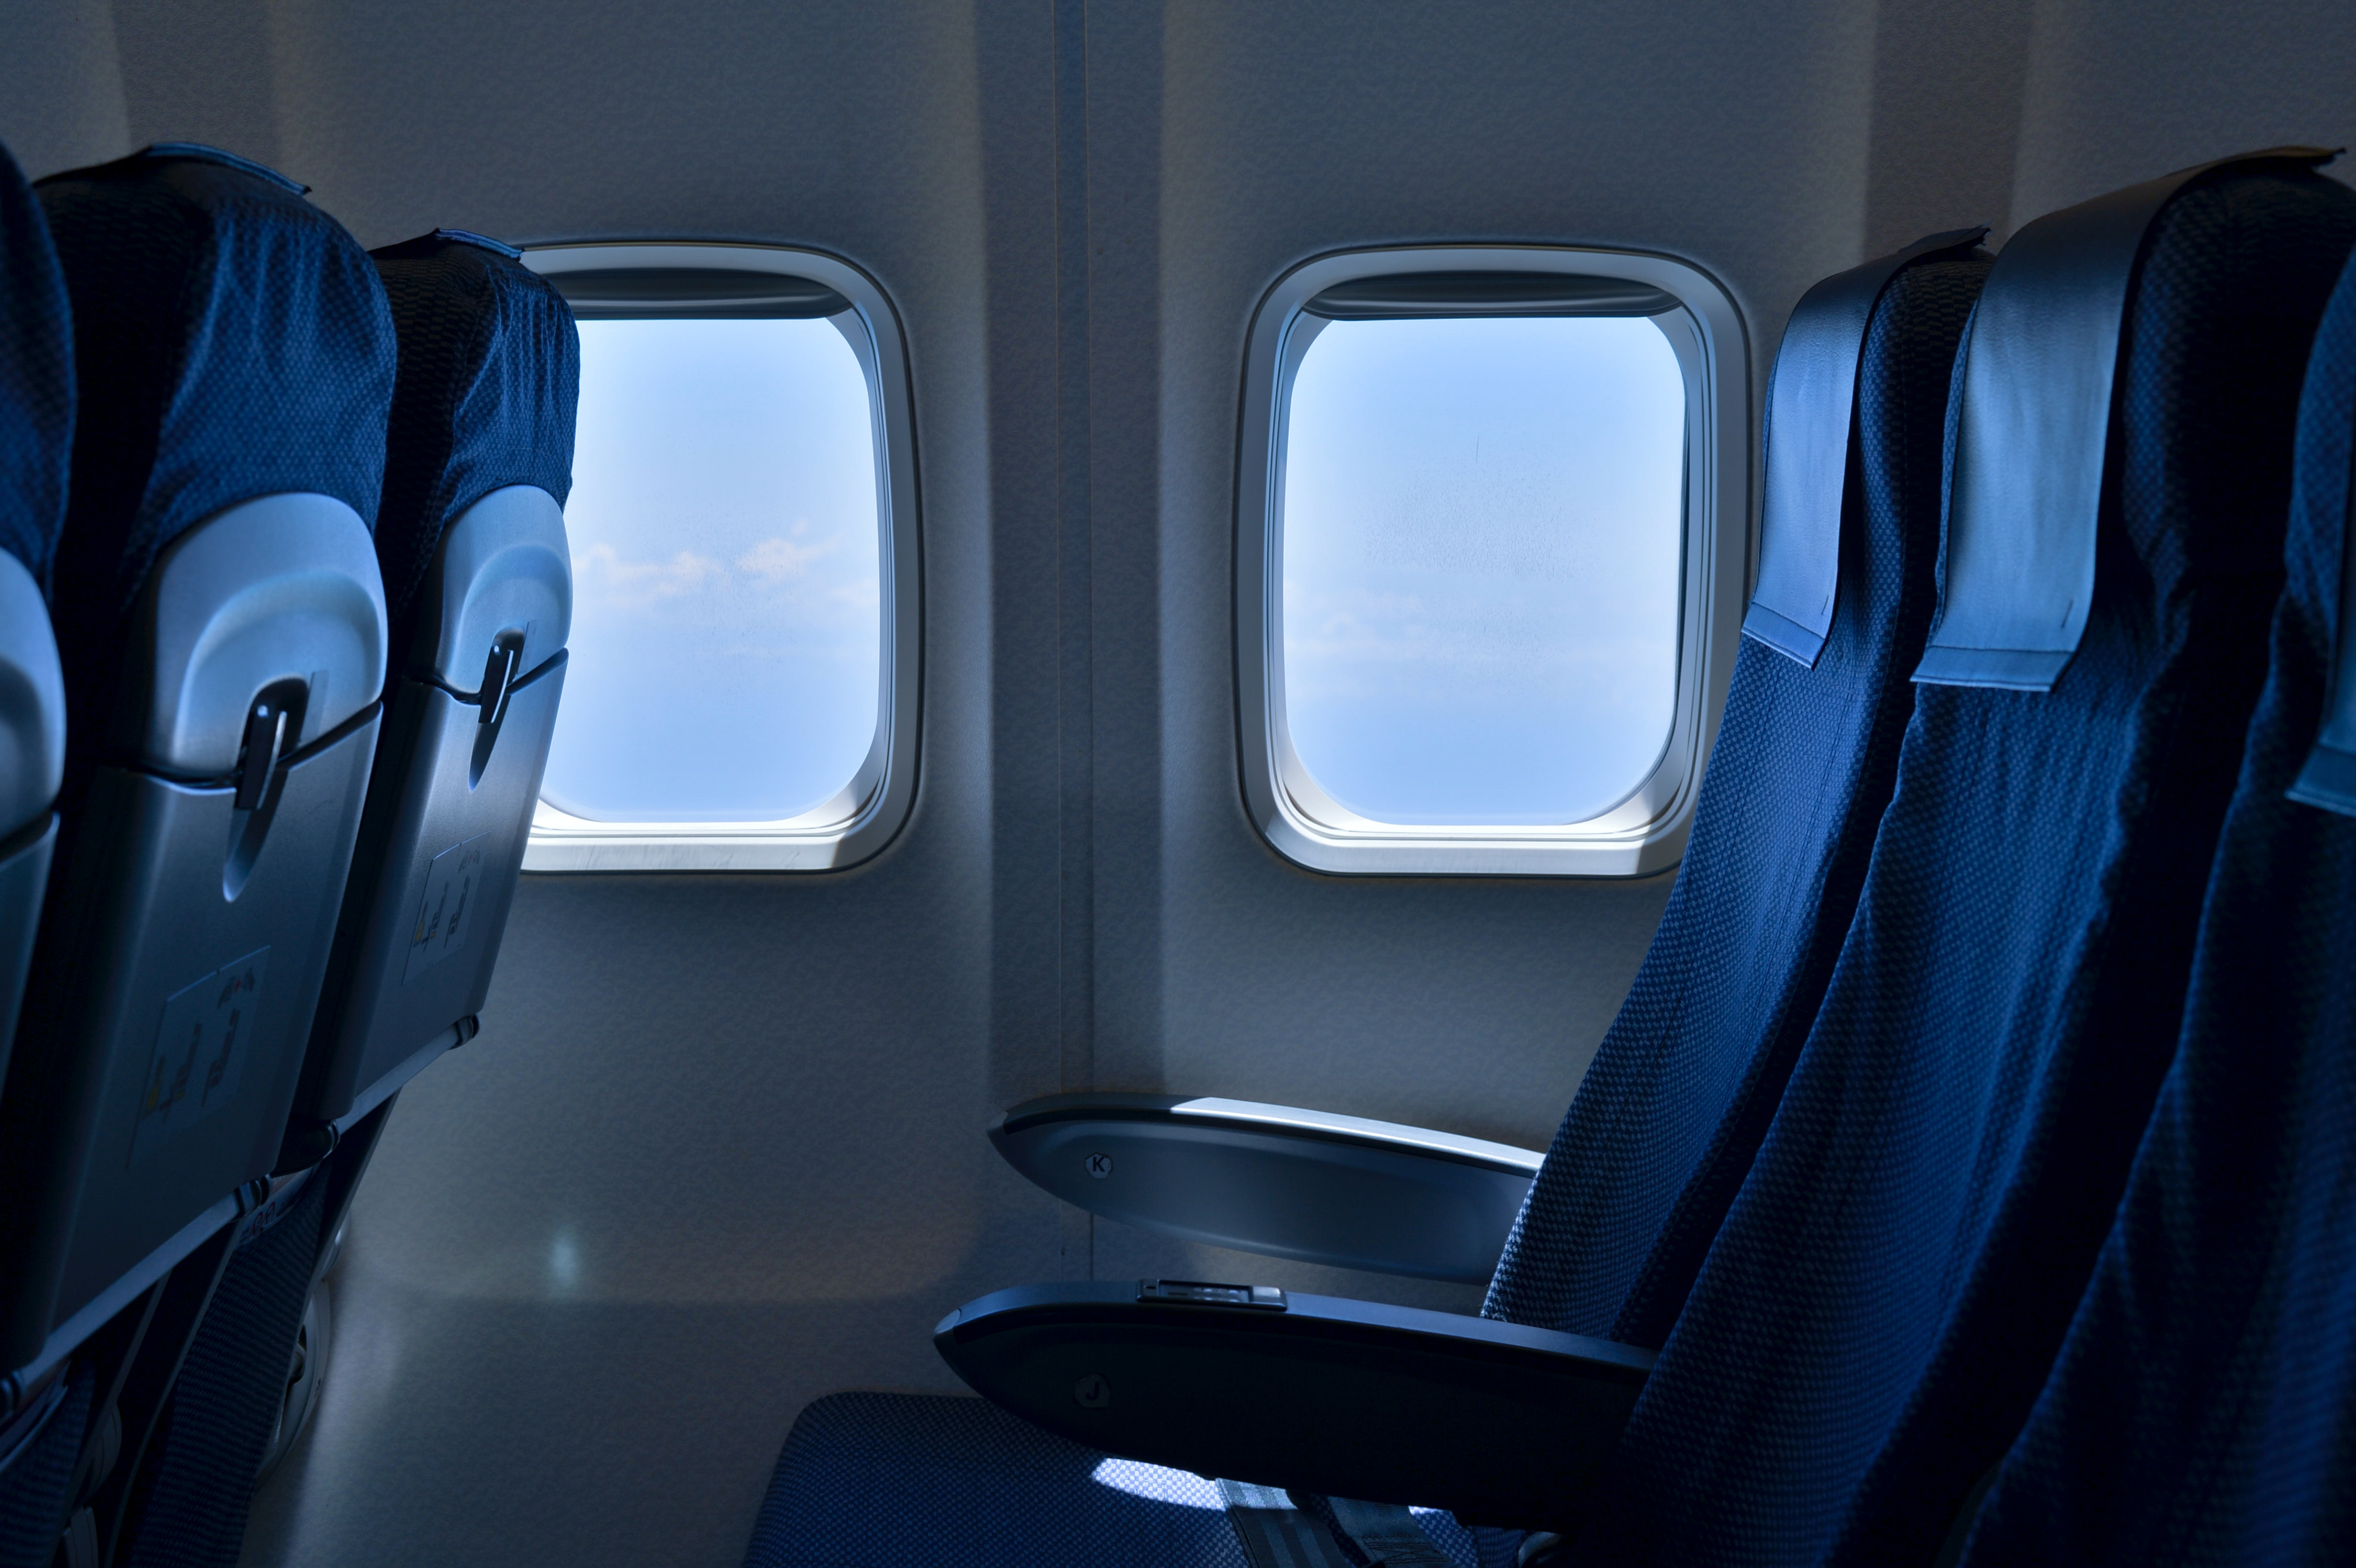 Did you know why most airplane seats are blue?